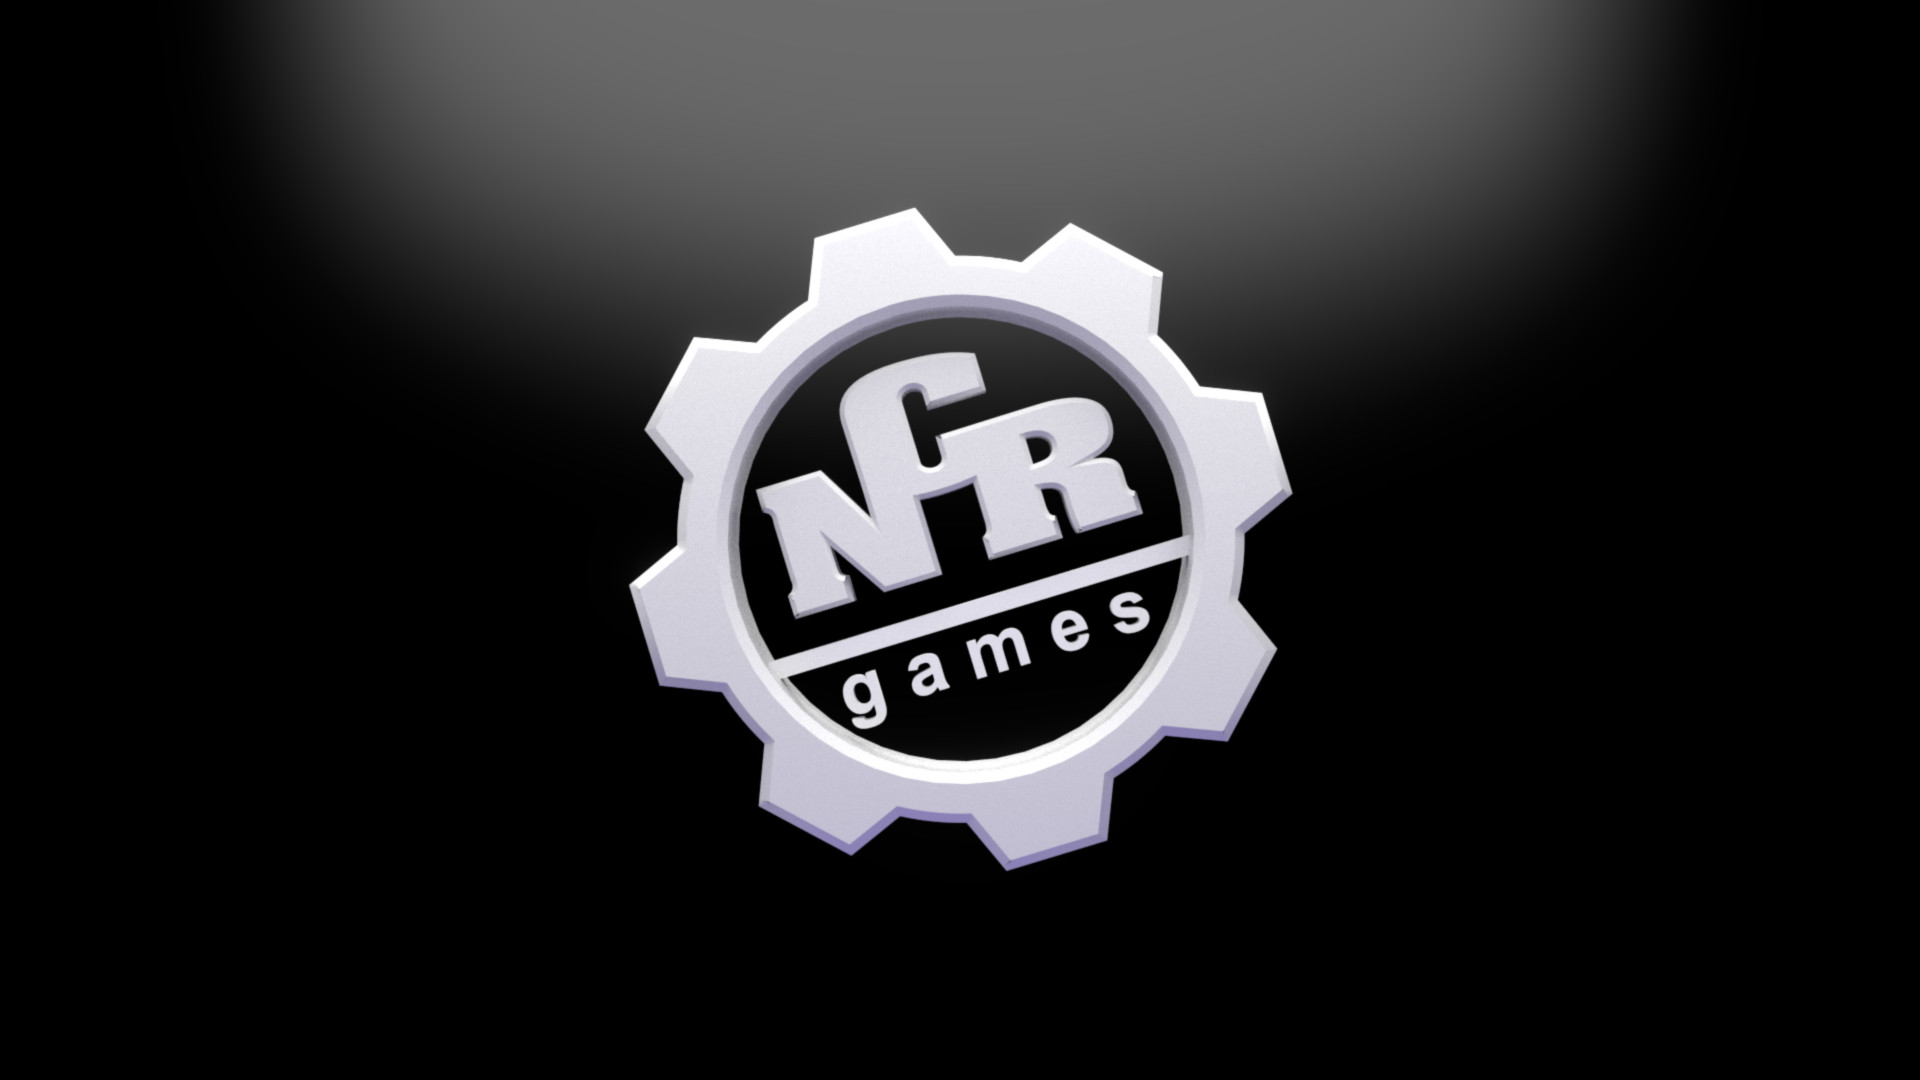 NCR Games Logo